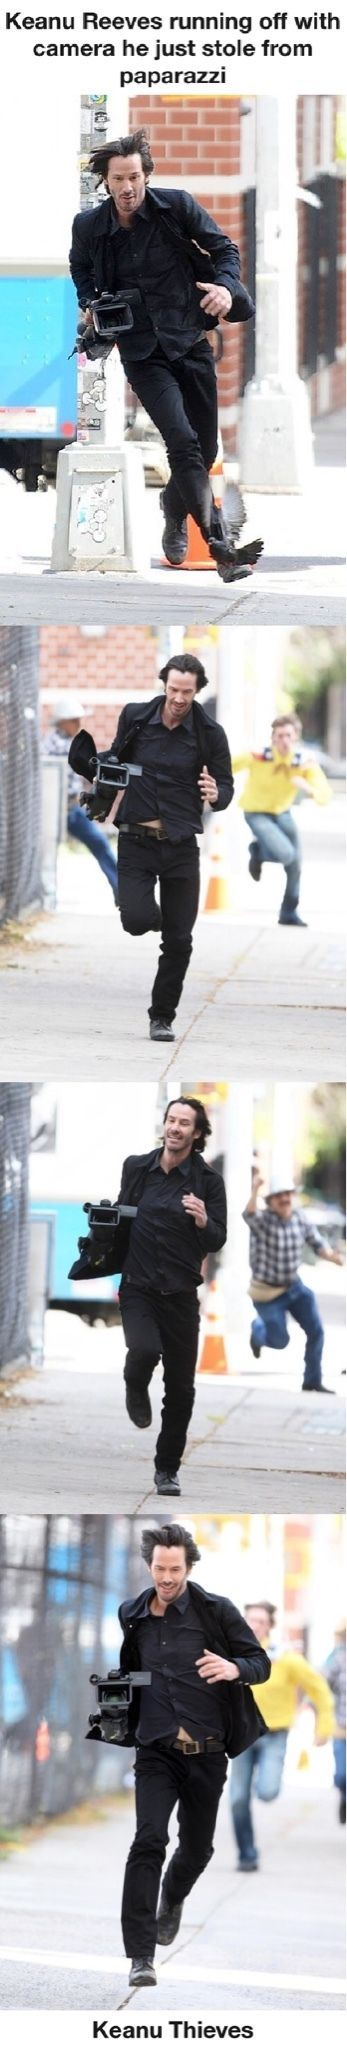 While other paparazzi took these pictures.